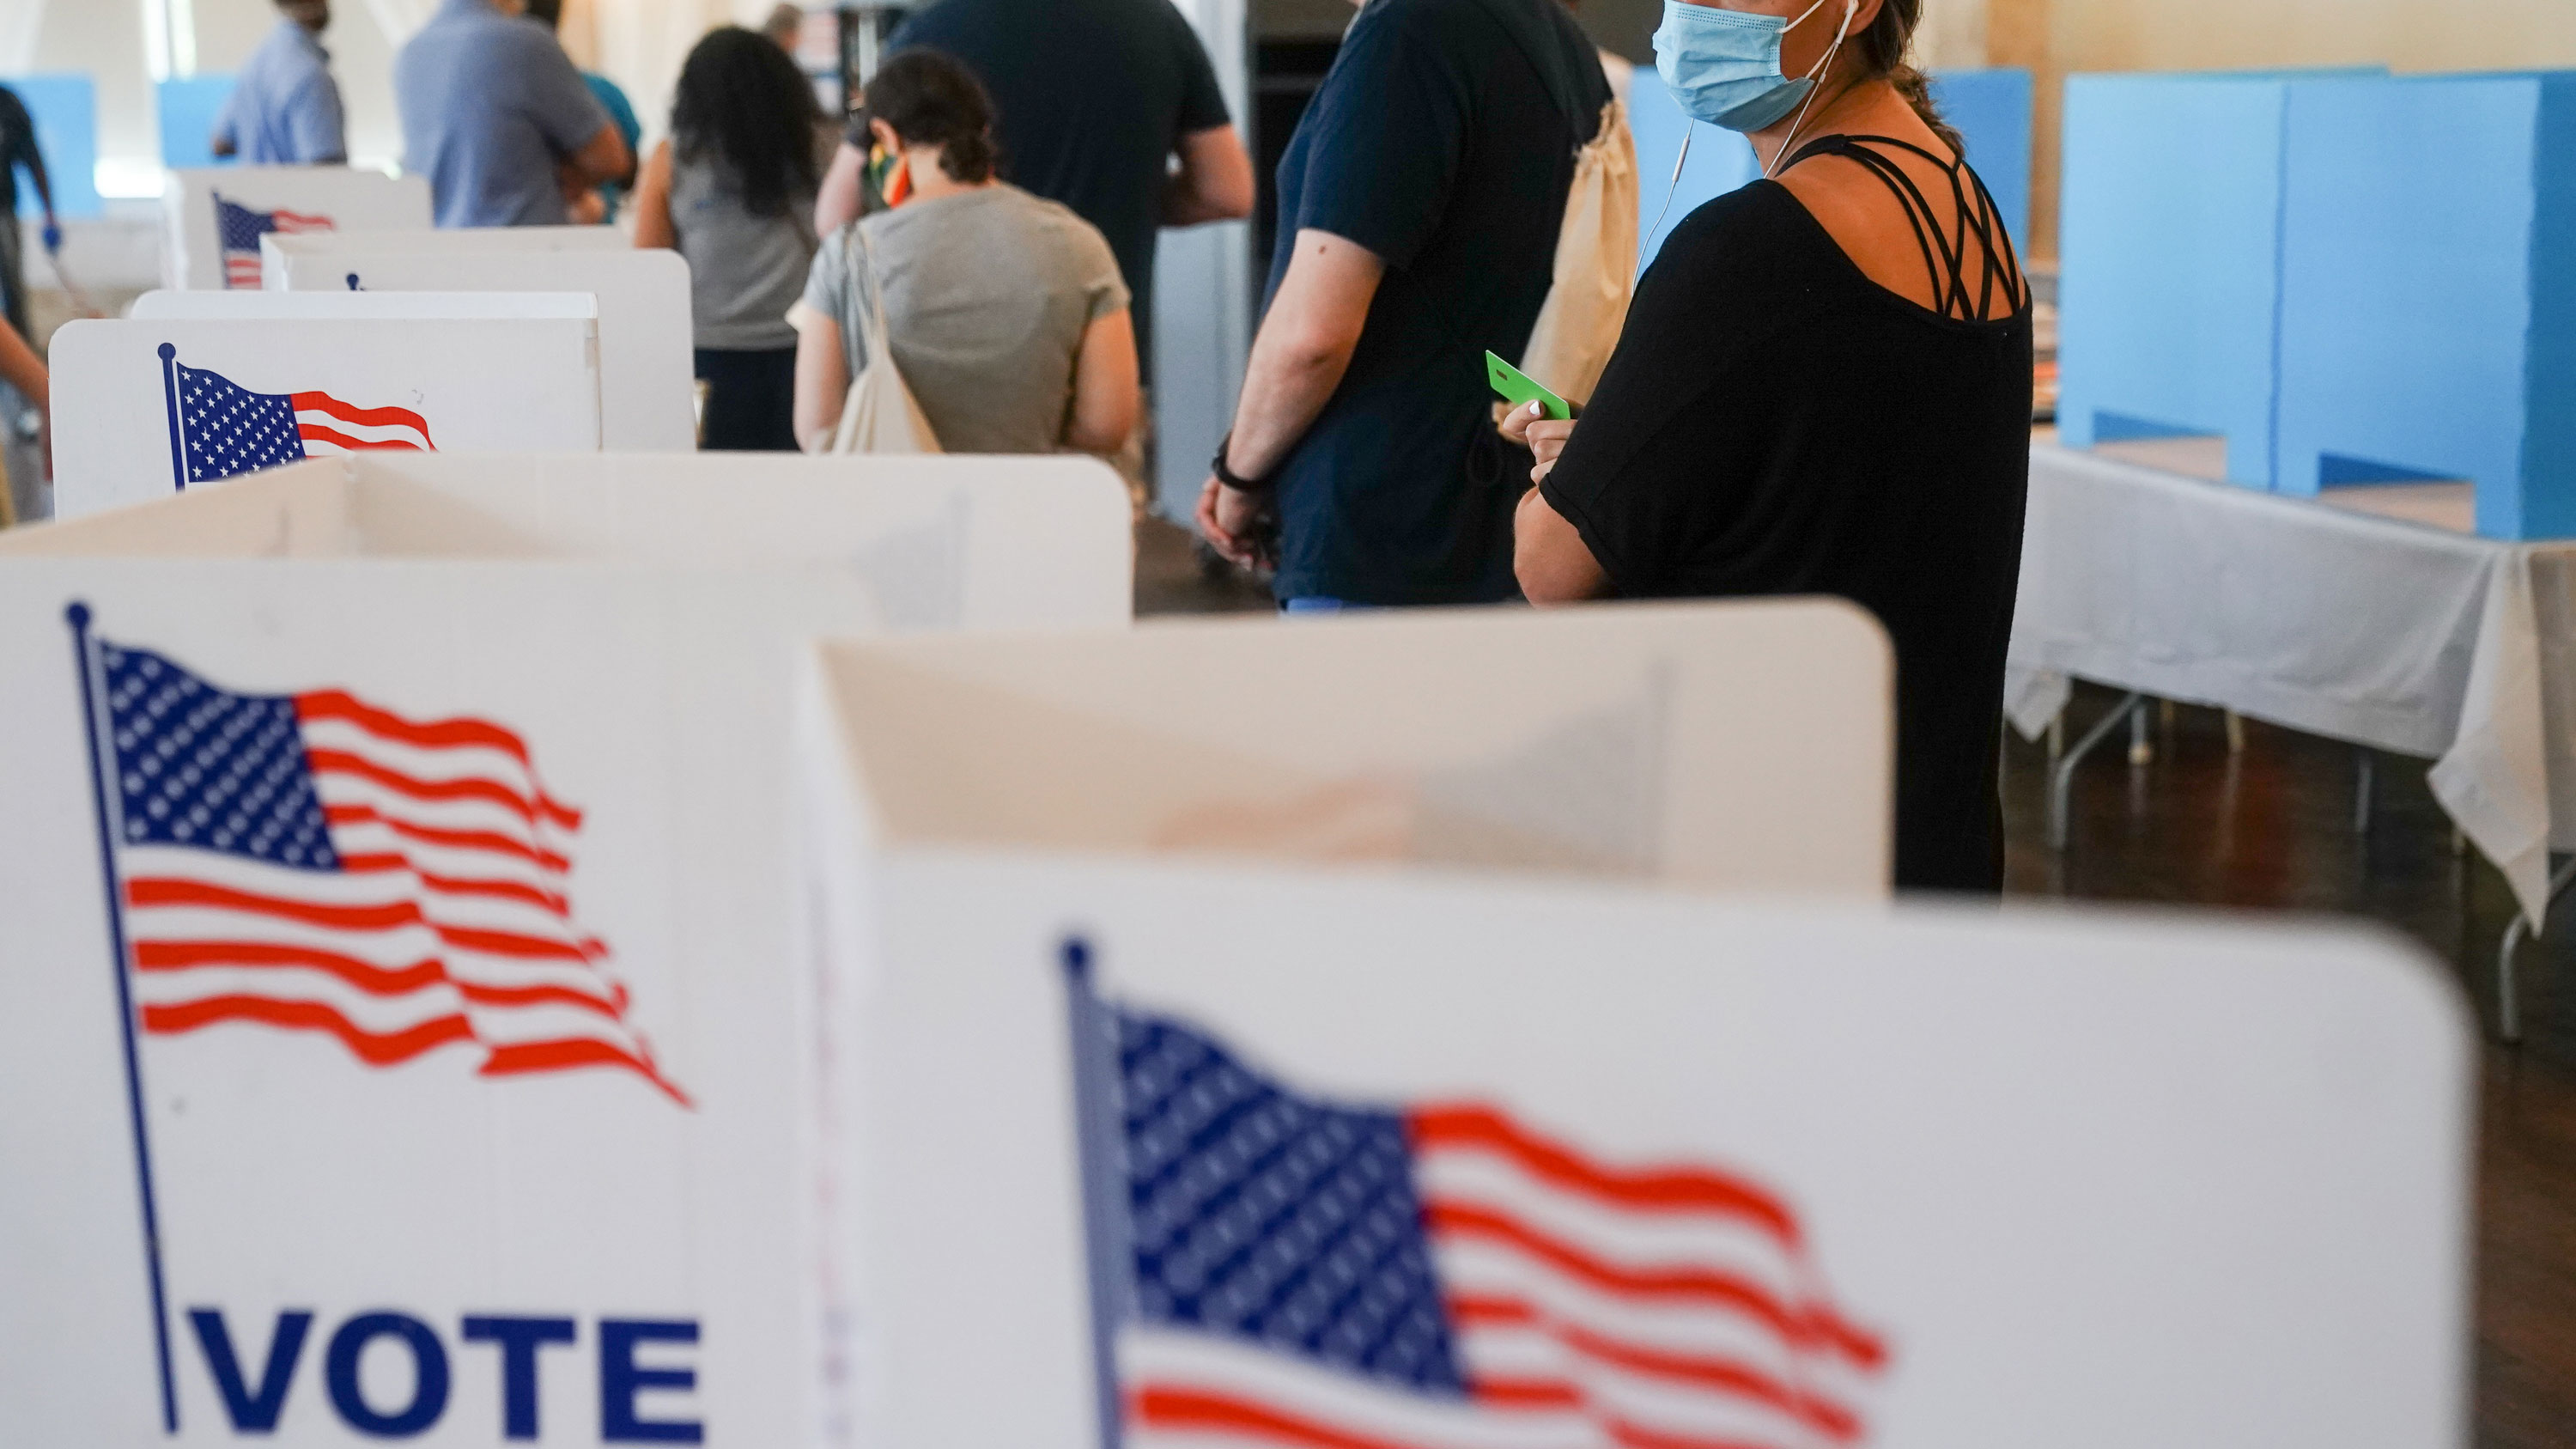 Activists claim fees, postage amount to modern-day poll taxes